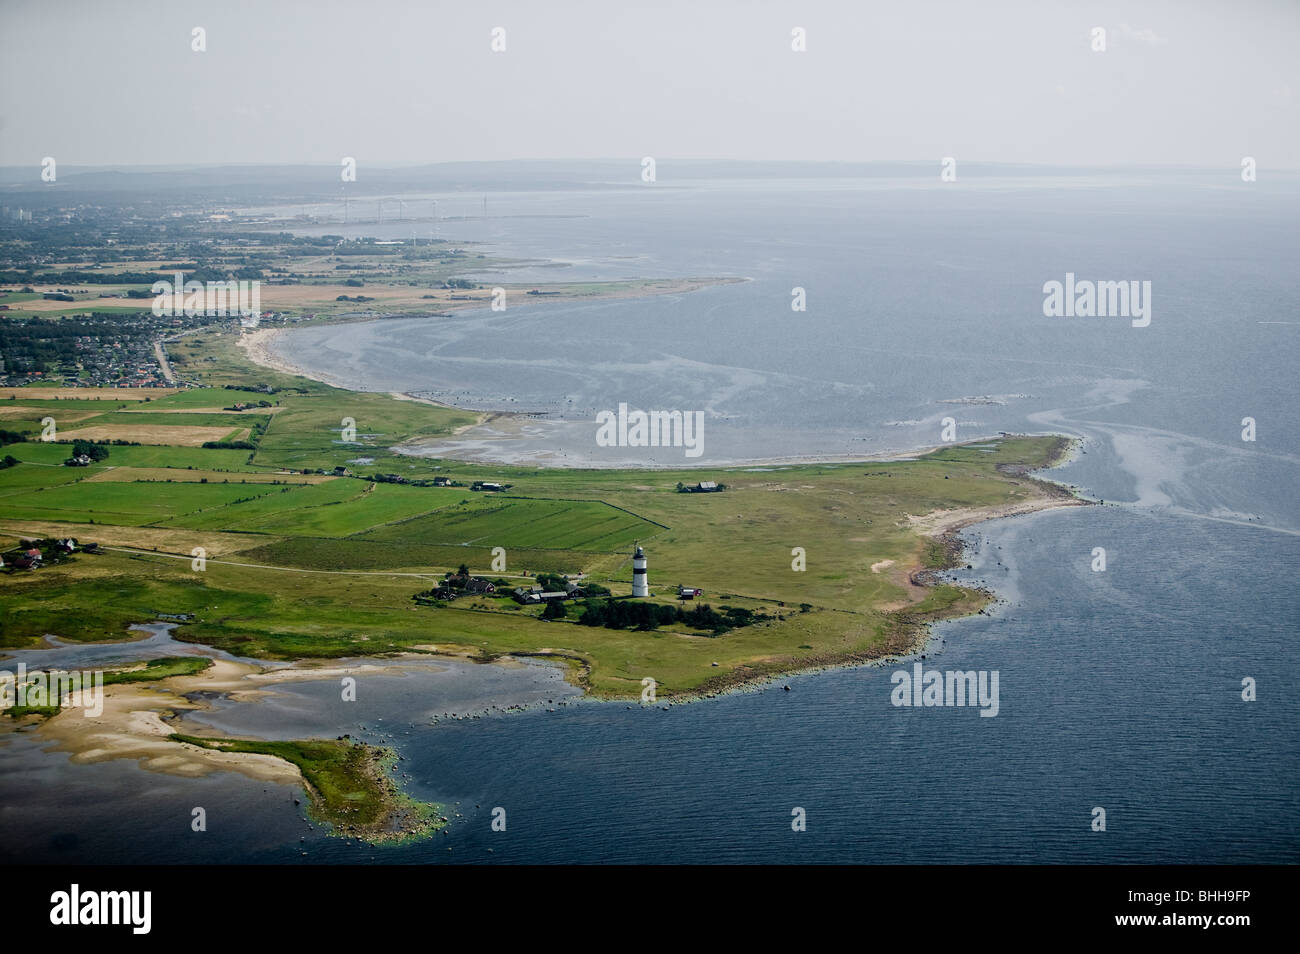 A lighthouse by the coast, aerial view, Halland, Sweden. - Stock Image